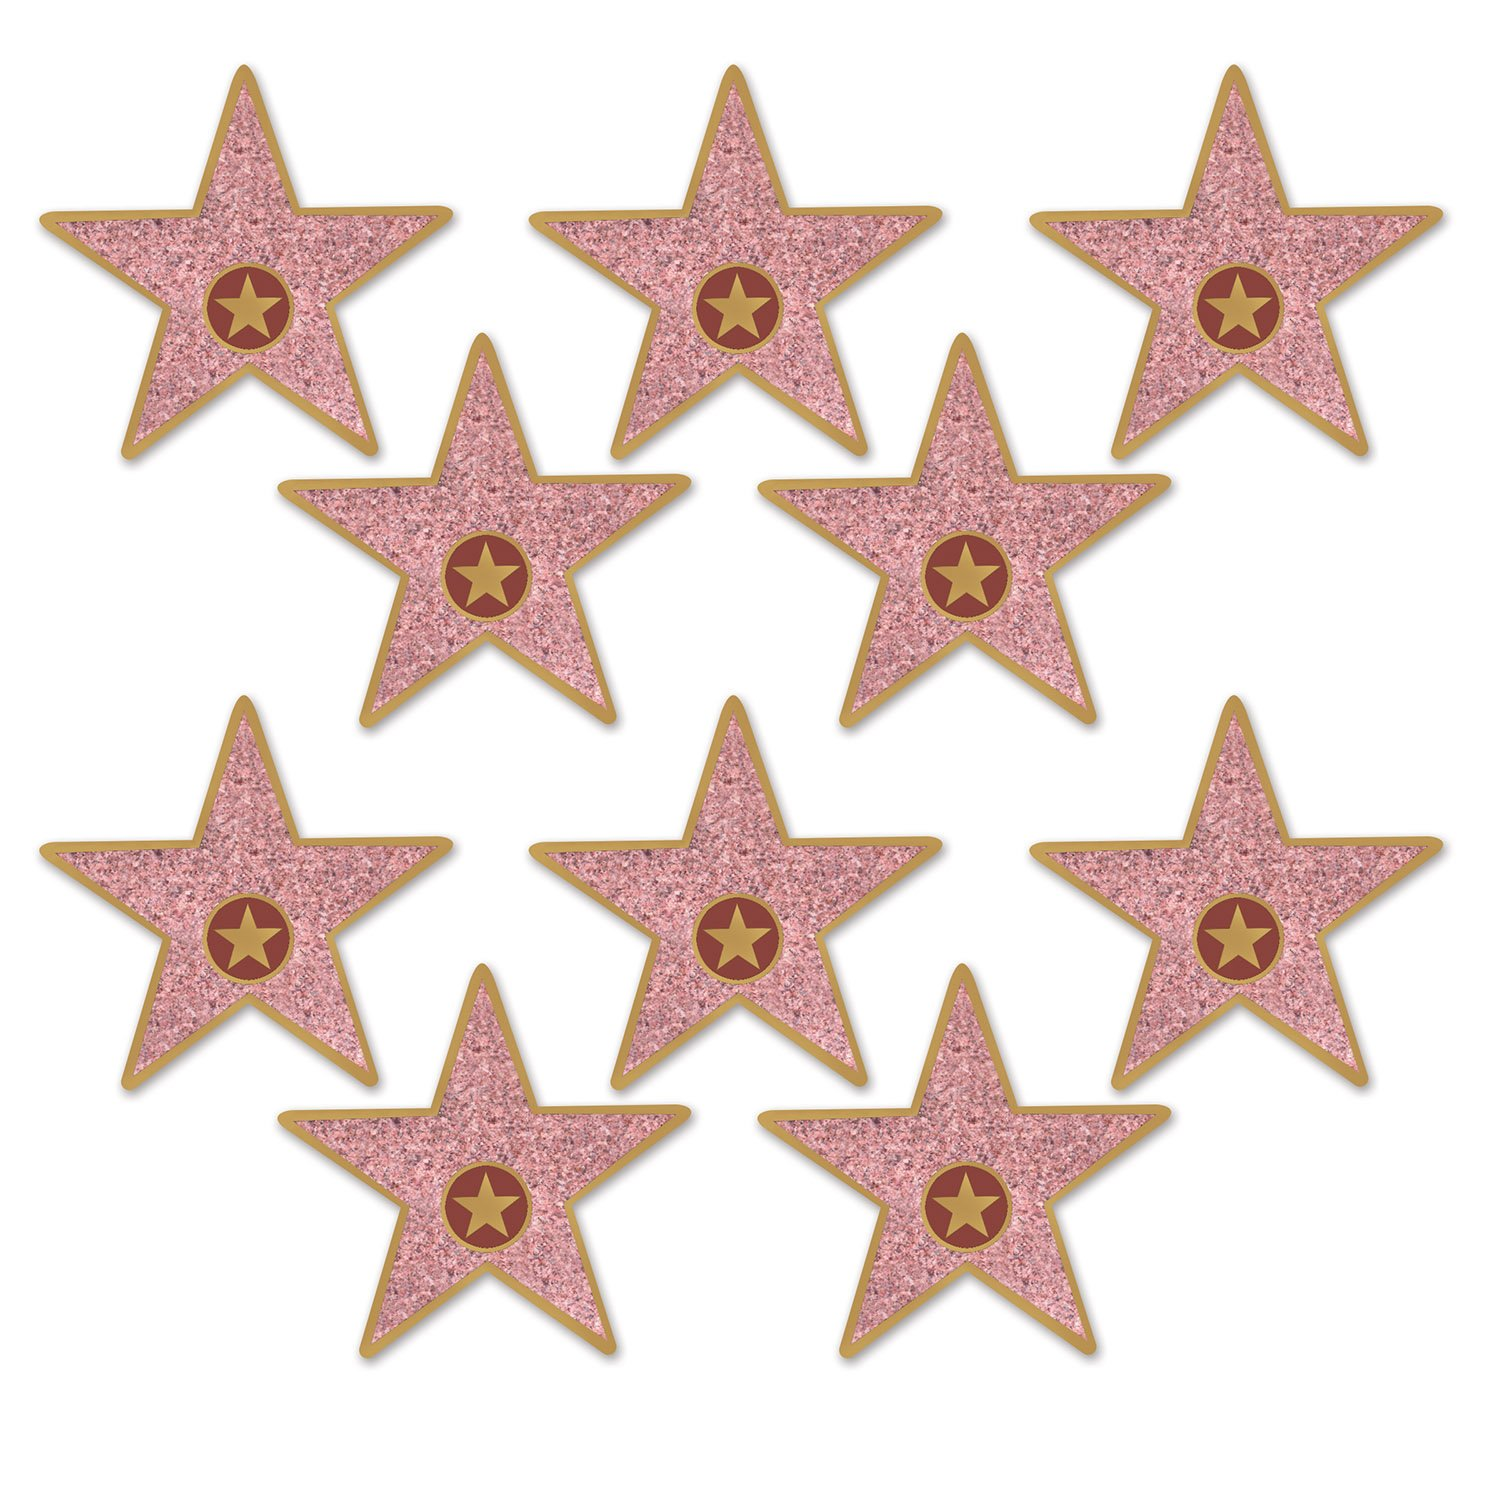 "Beistle Mini Star Cutouts, 5"", Multicolor"